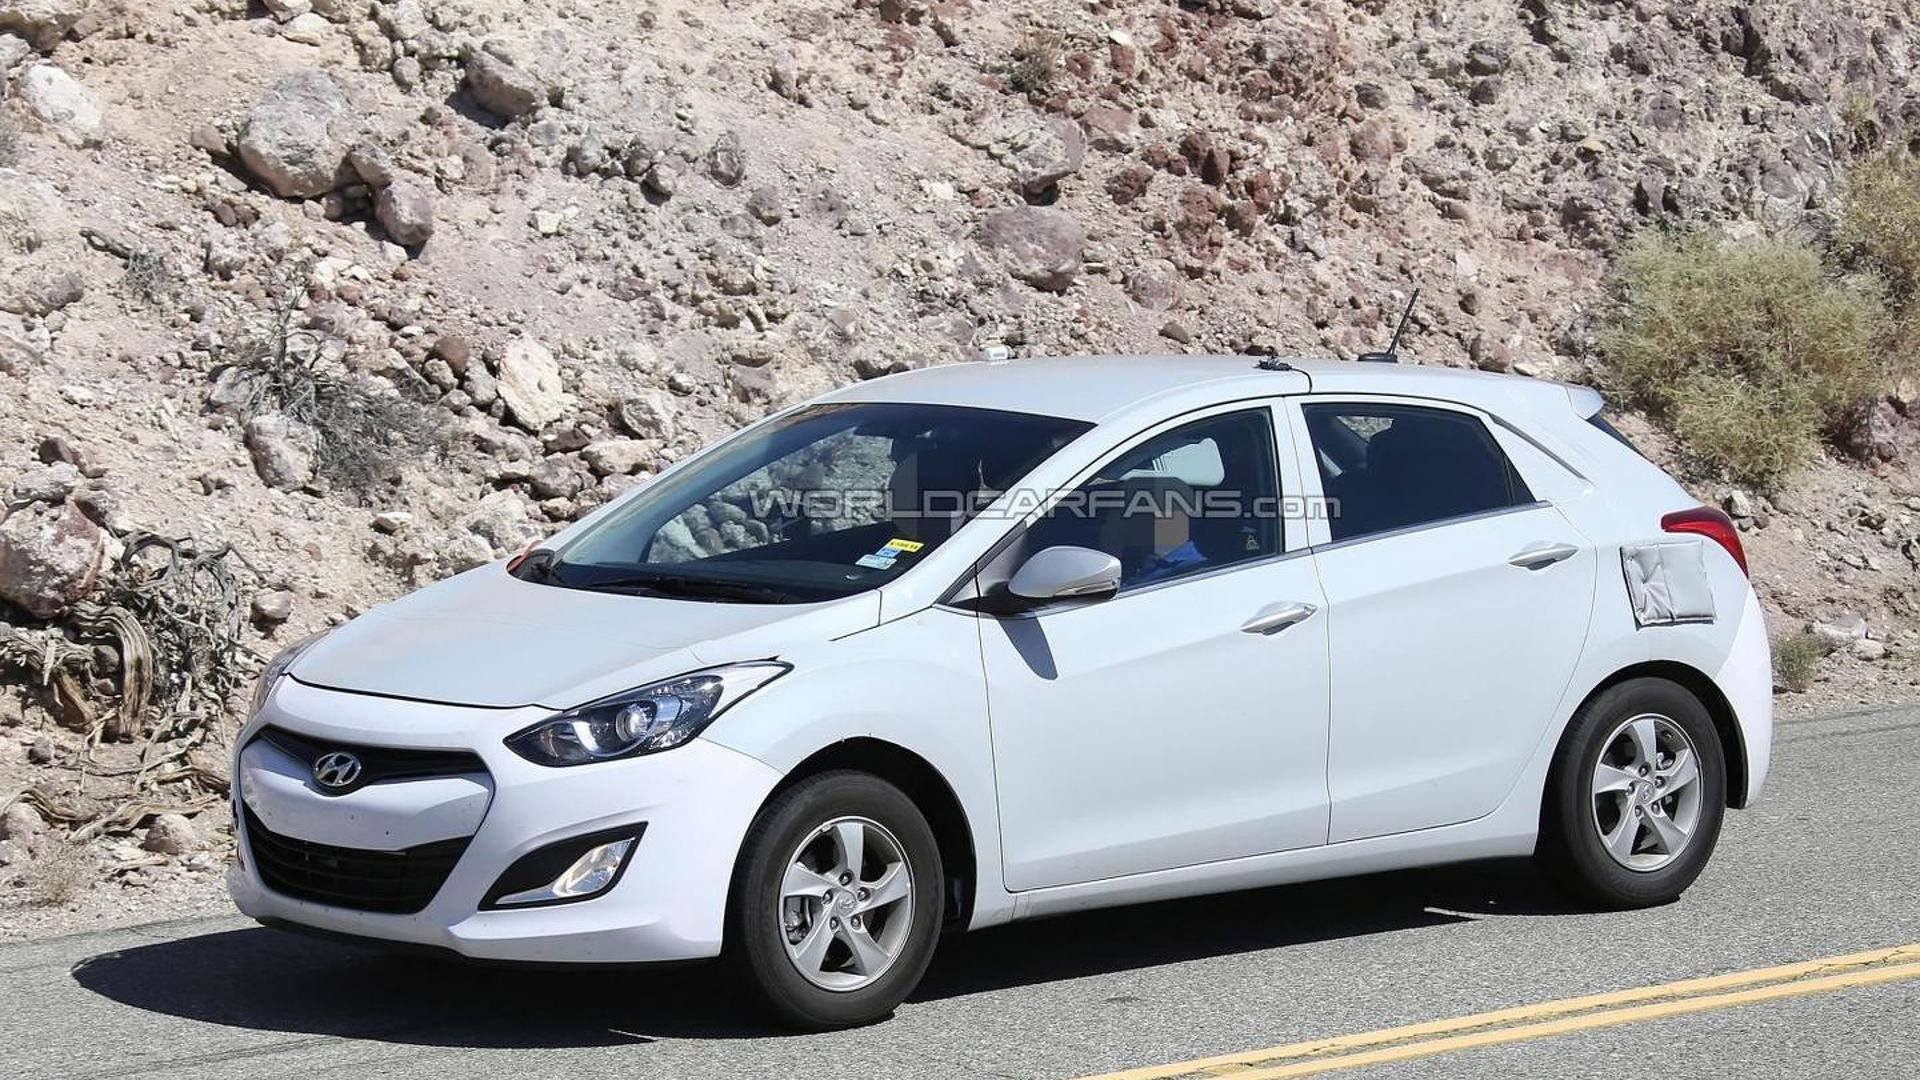 Hyundai's Prius-fighting hybrid caught testing